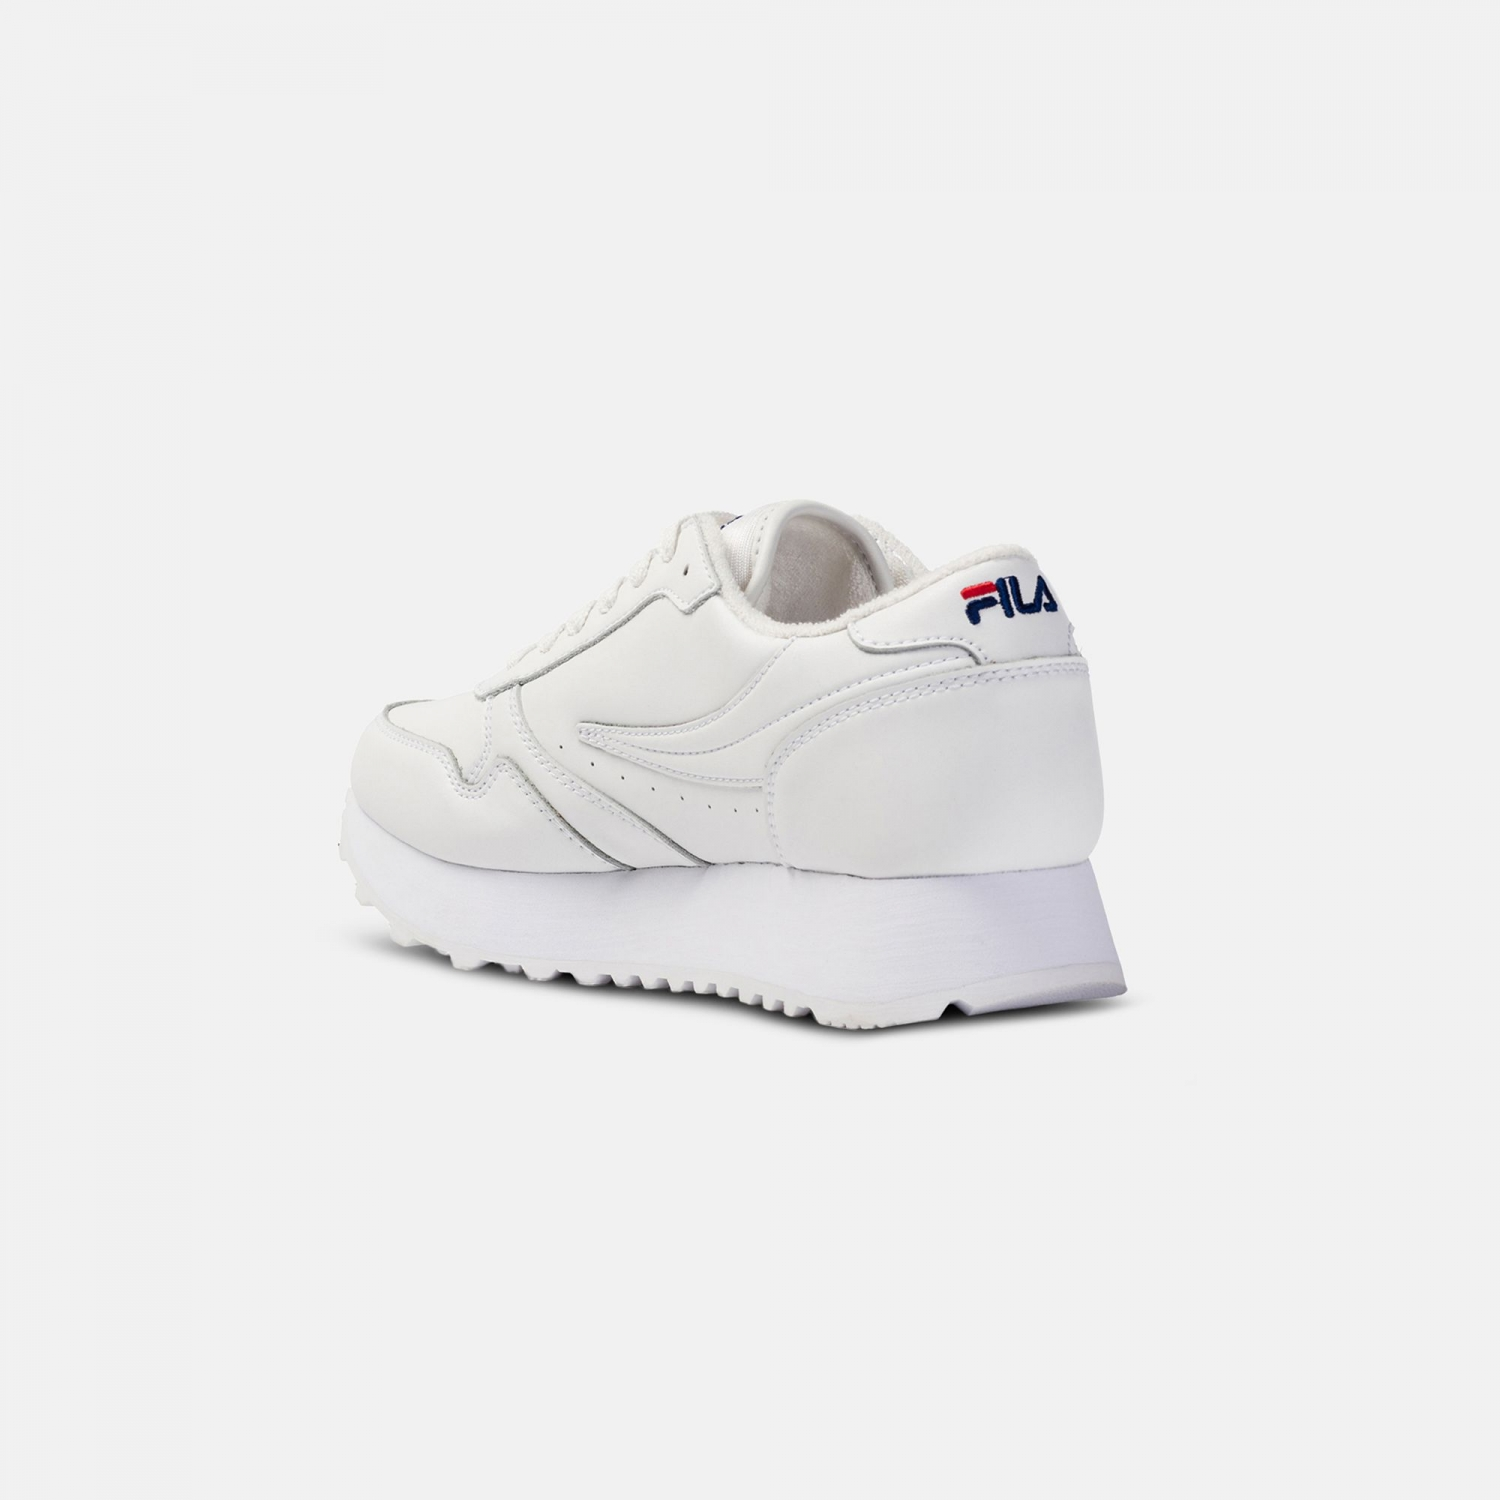 Fila Orbit Zeppa Low Wmn white Bild 3